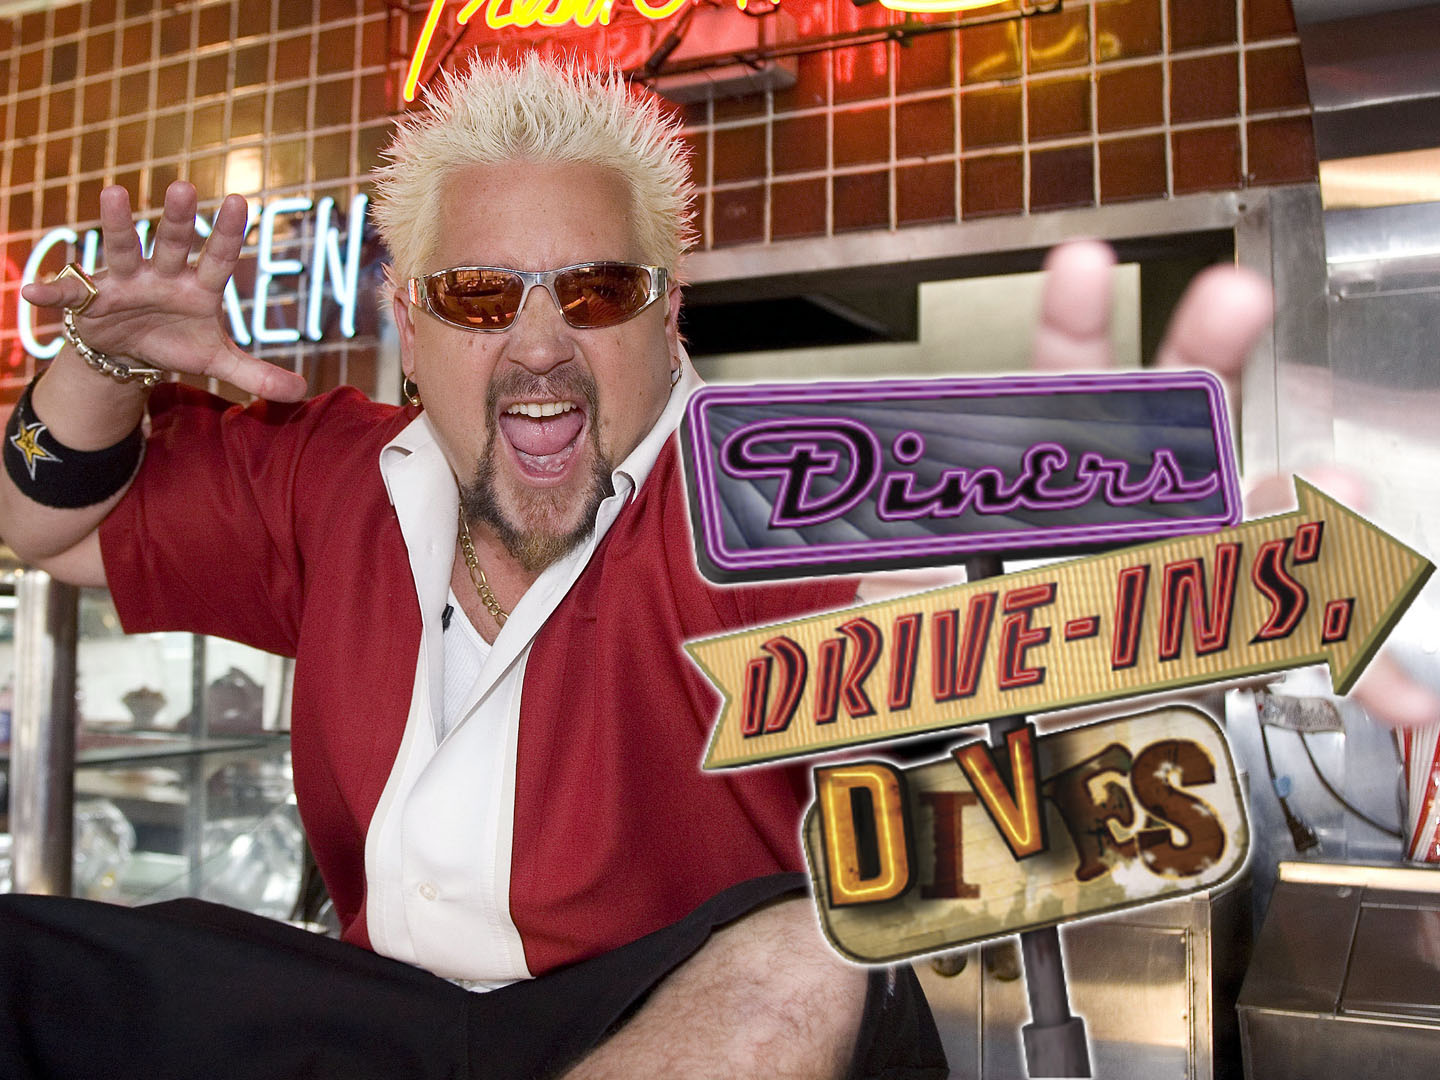 Bro's Featured On Diners, Drive-Ins And Dives